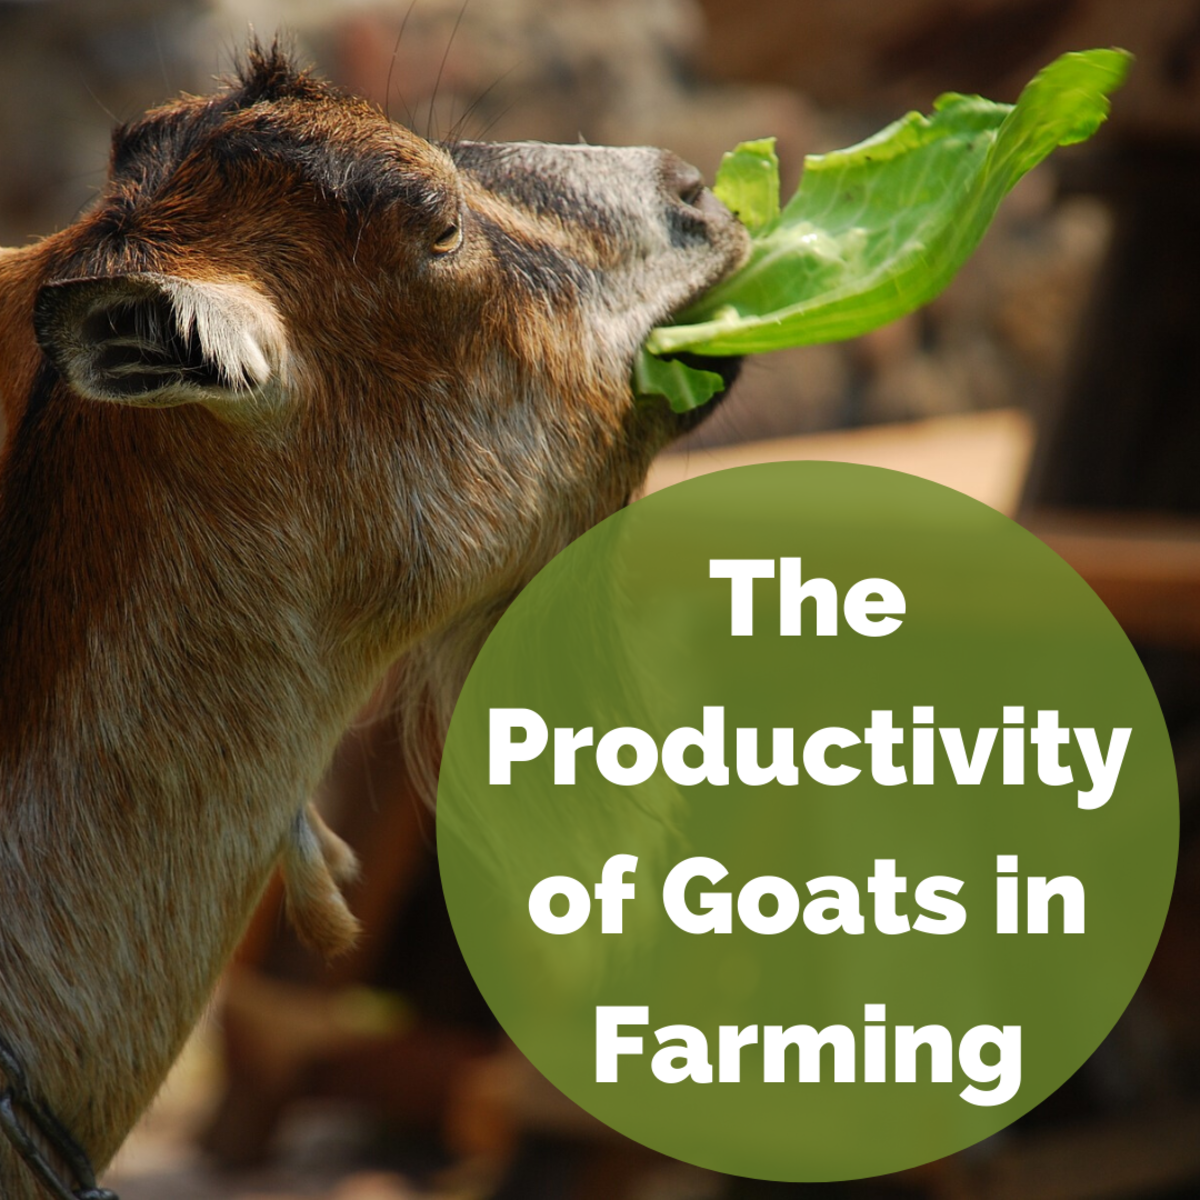 Explore the role of goats in farming systems.